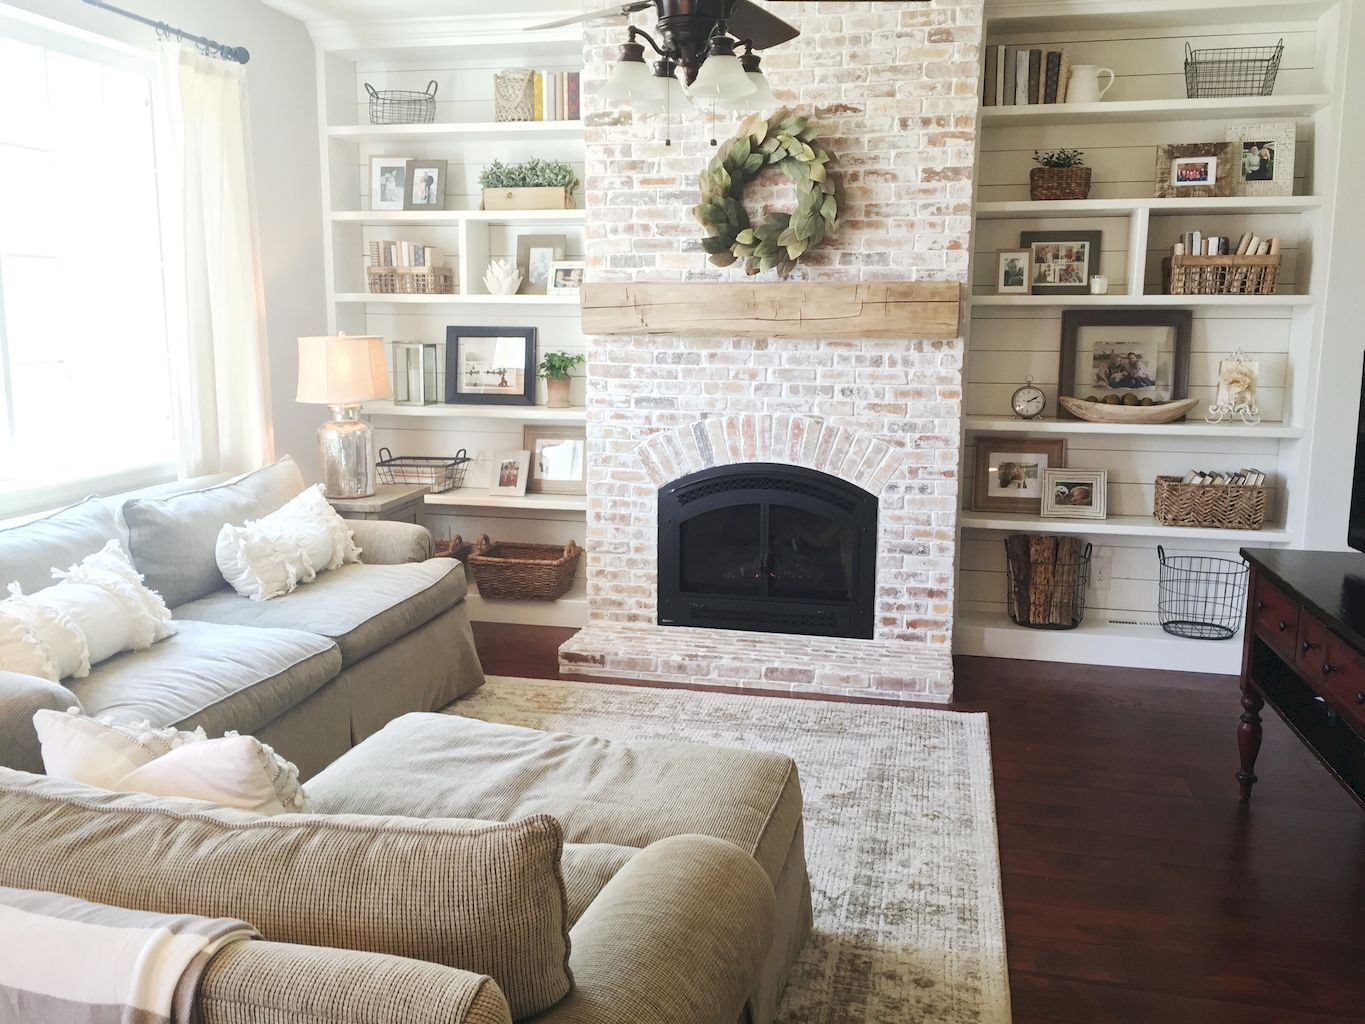 85 Farmhouse Style Fireplace Ideas Decorapartment Farm House Living Room Fireplace Built Ins White Wash Brick Fireplace